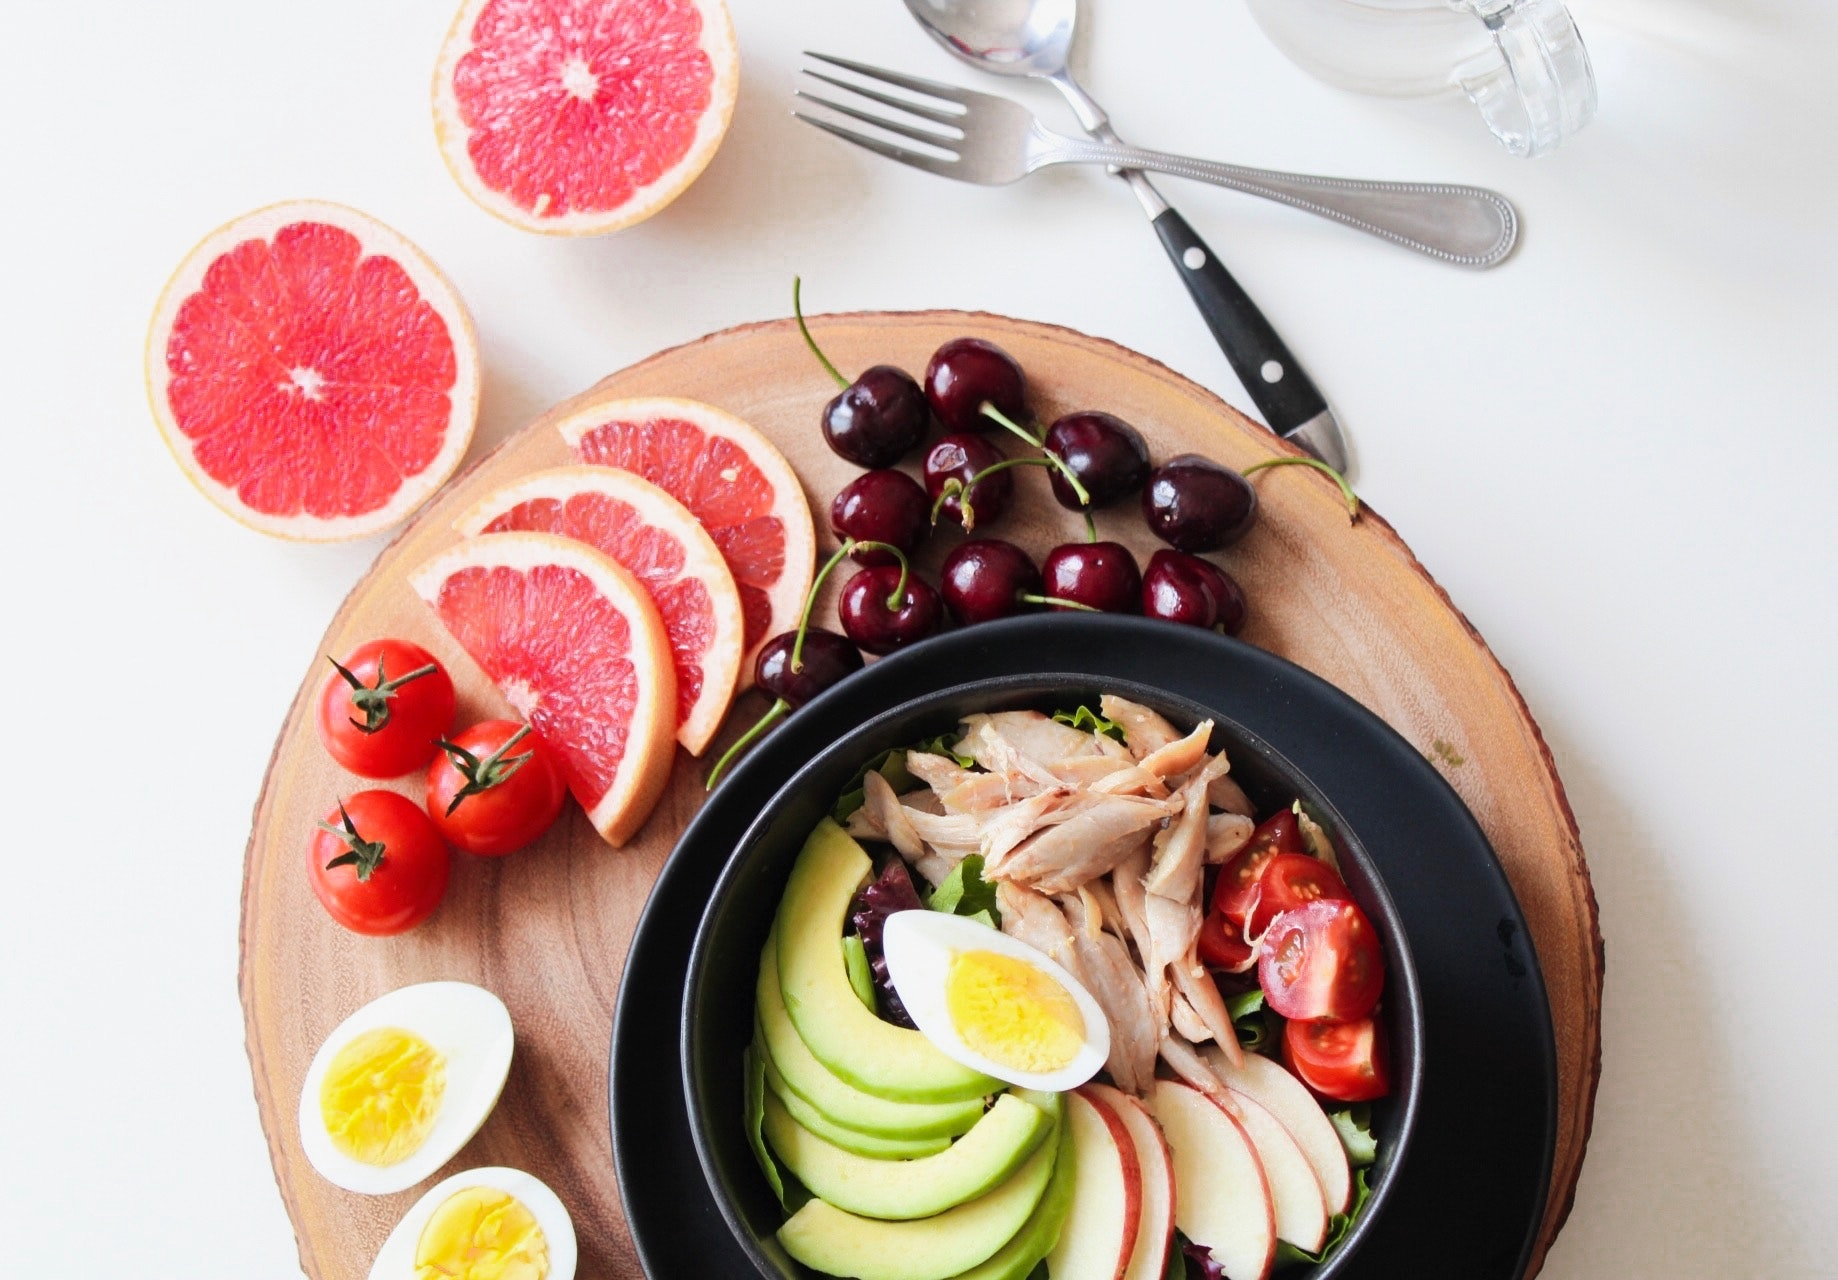 Bowl of Vegetable Salad and Fruits, Bowl, Salad, Healthy food, Healthy lifestyle, HQ Photo